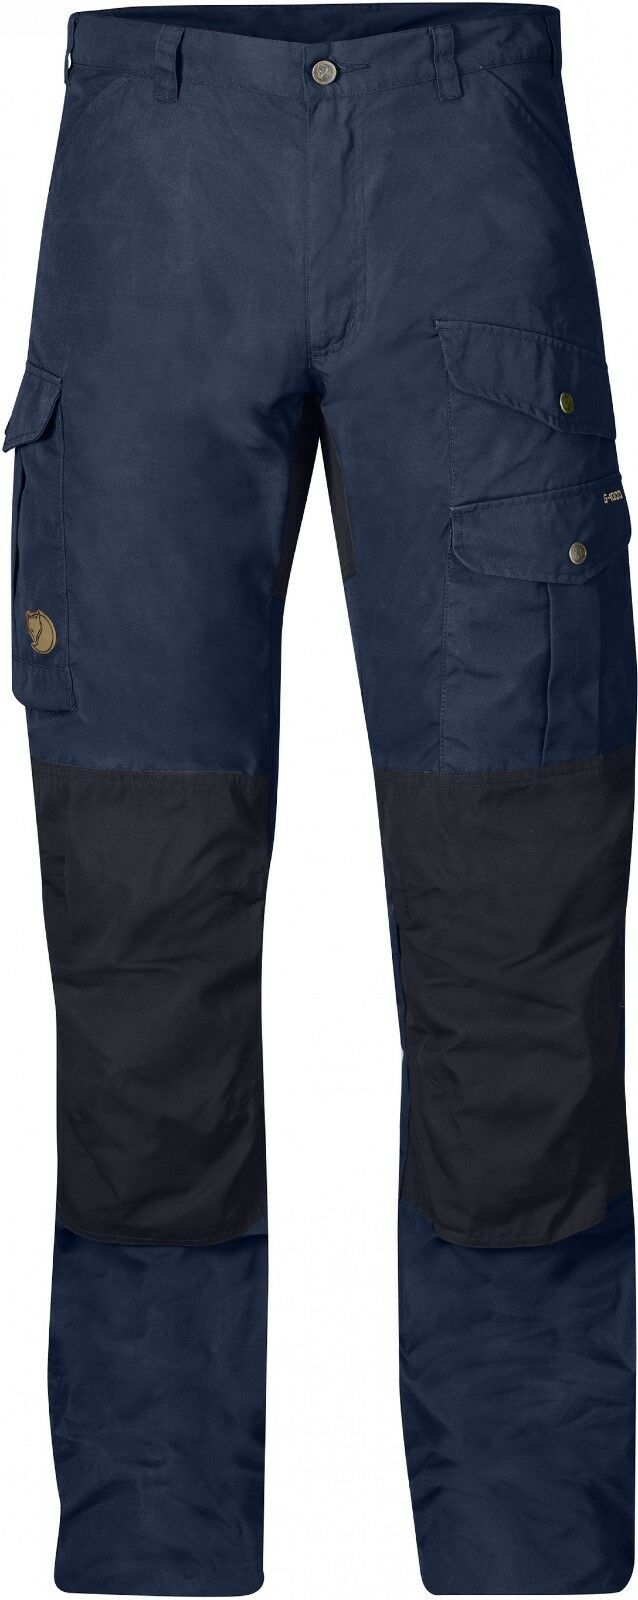 Fjäll Räven Barents pro Trousers Storm Night Sky G1000  Men's Trousers  enjoy saving 30-50% off